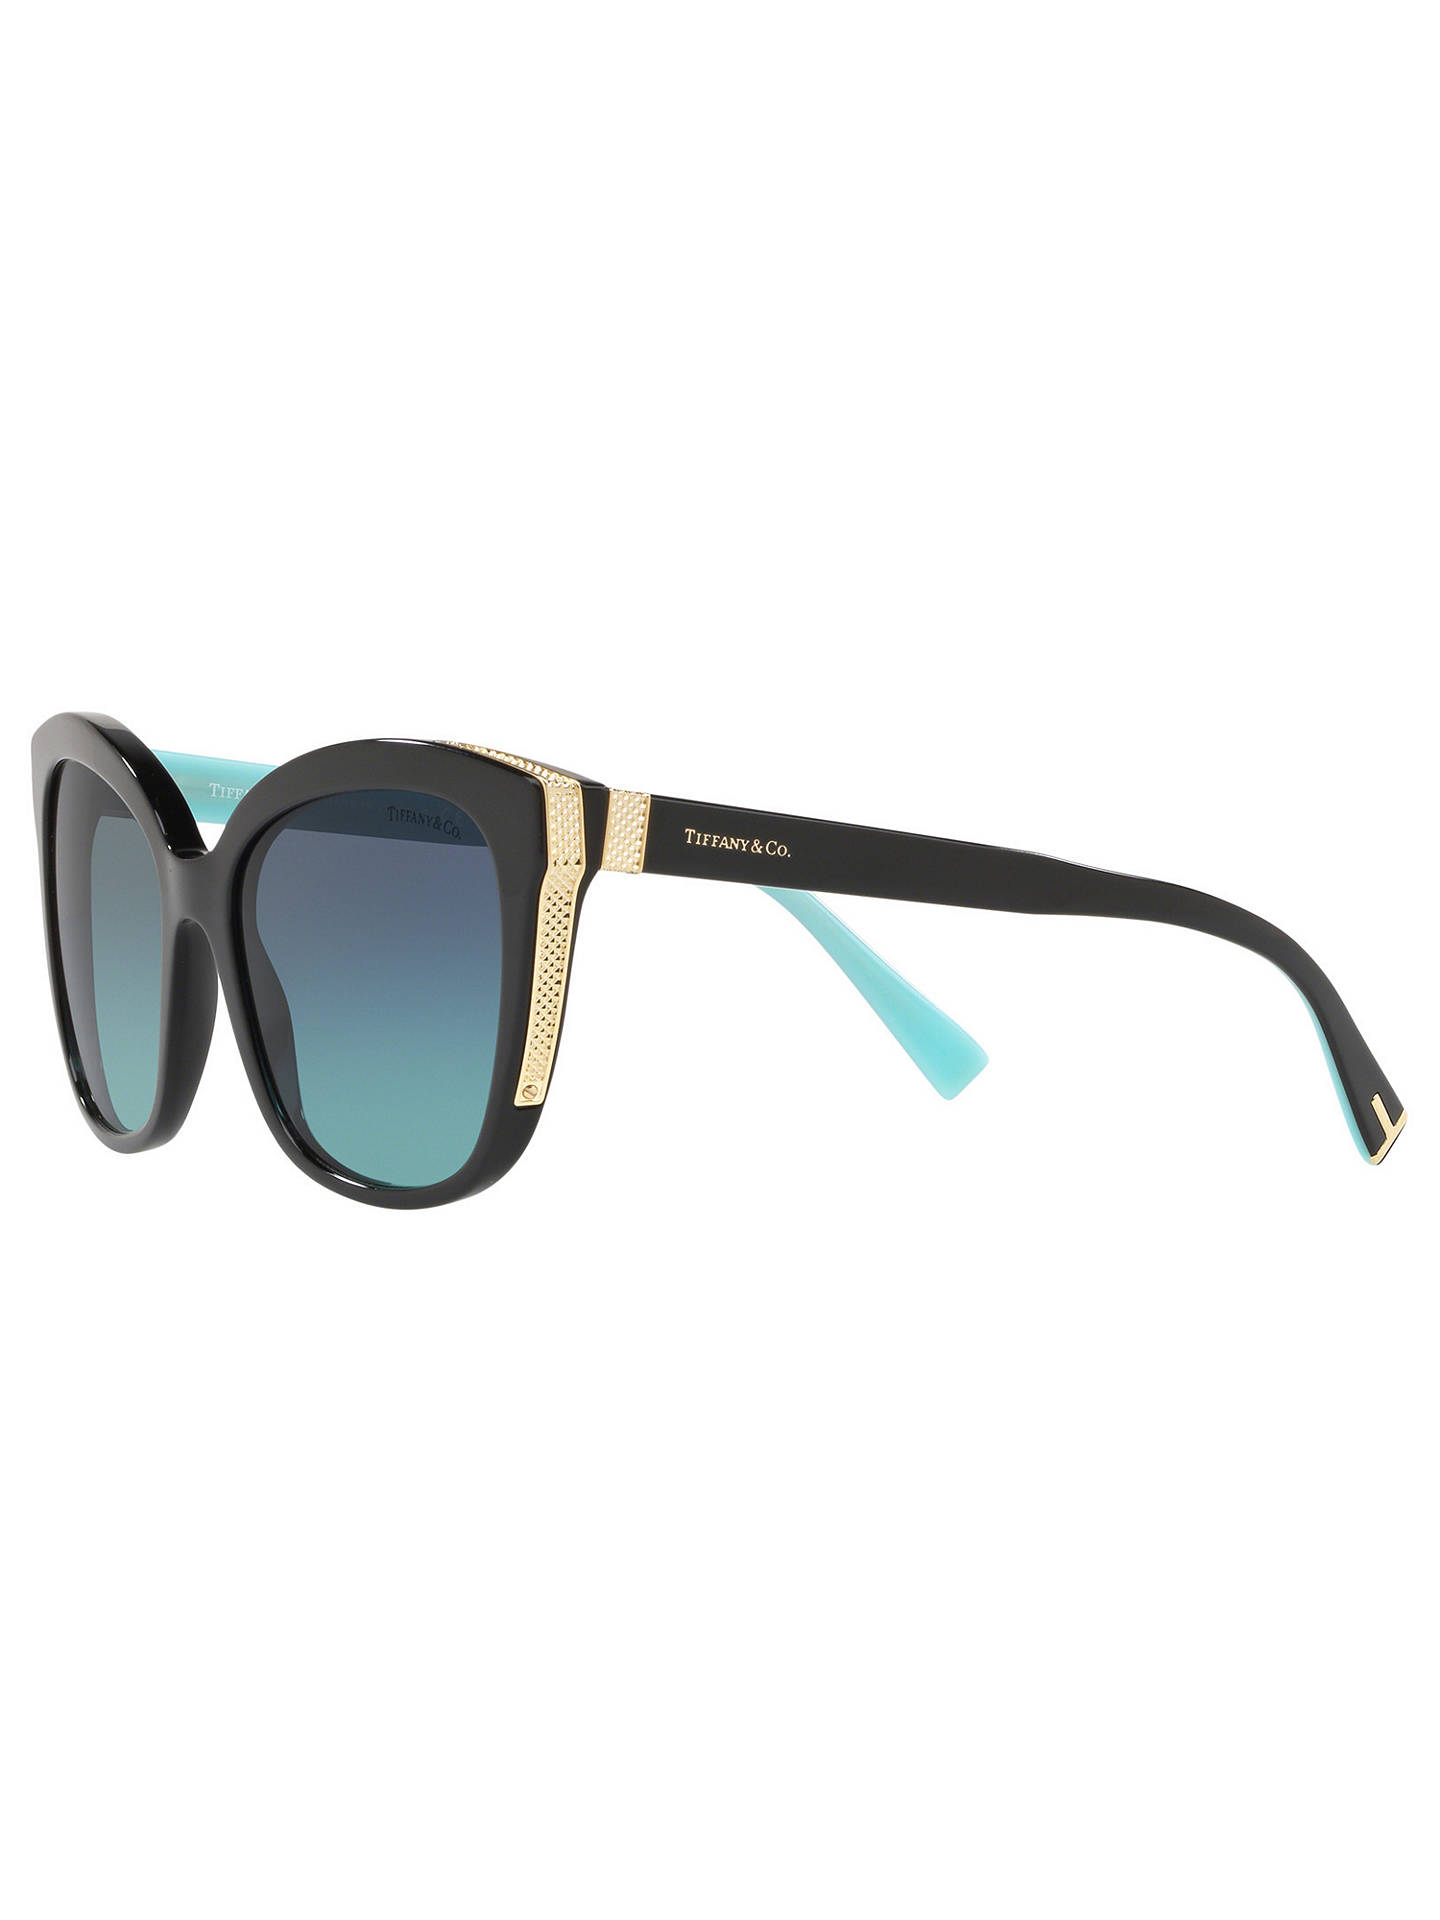 Buy Tiffany & Co. Sunglasses for Women